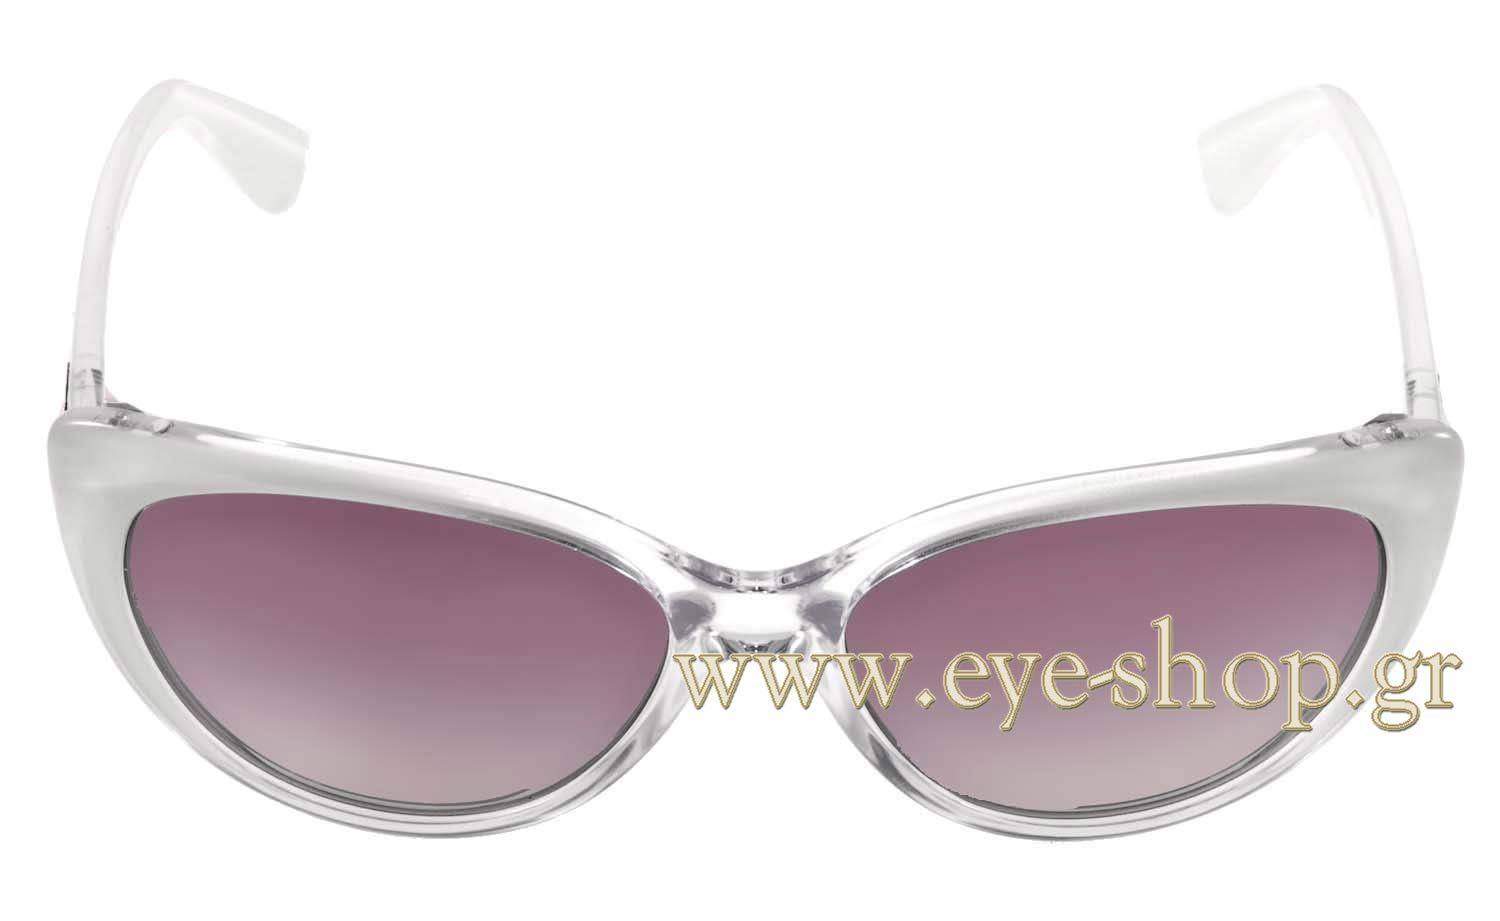 Glasses Frames Katy Tx : katy-perry-wearing-sunglasses-vogue-2677s.html wearing ...